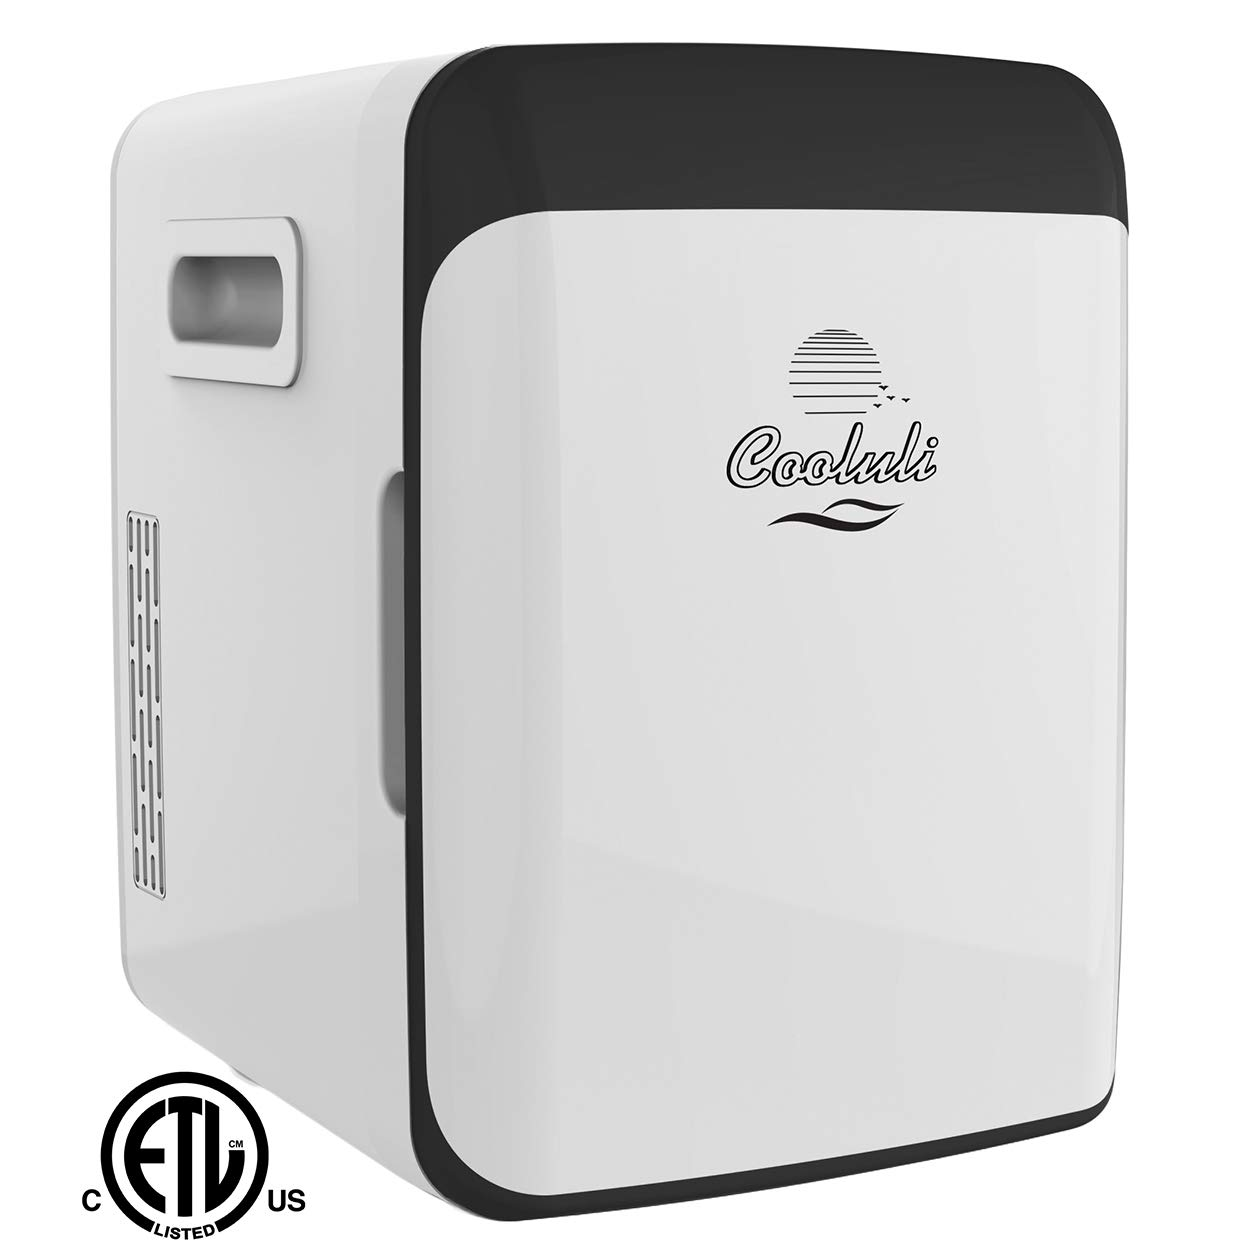 Cooluli Classic Electric Mini Fridge Cooler and Warmer AC/DC Portable Thermoelectric System (White, 15 Liter/18 Cans)